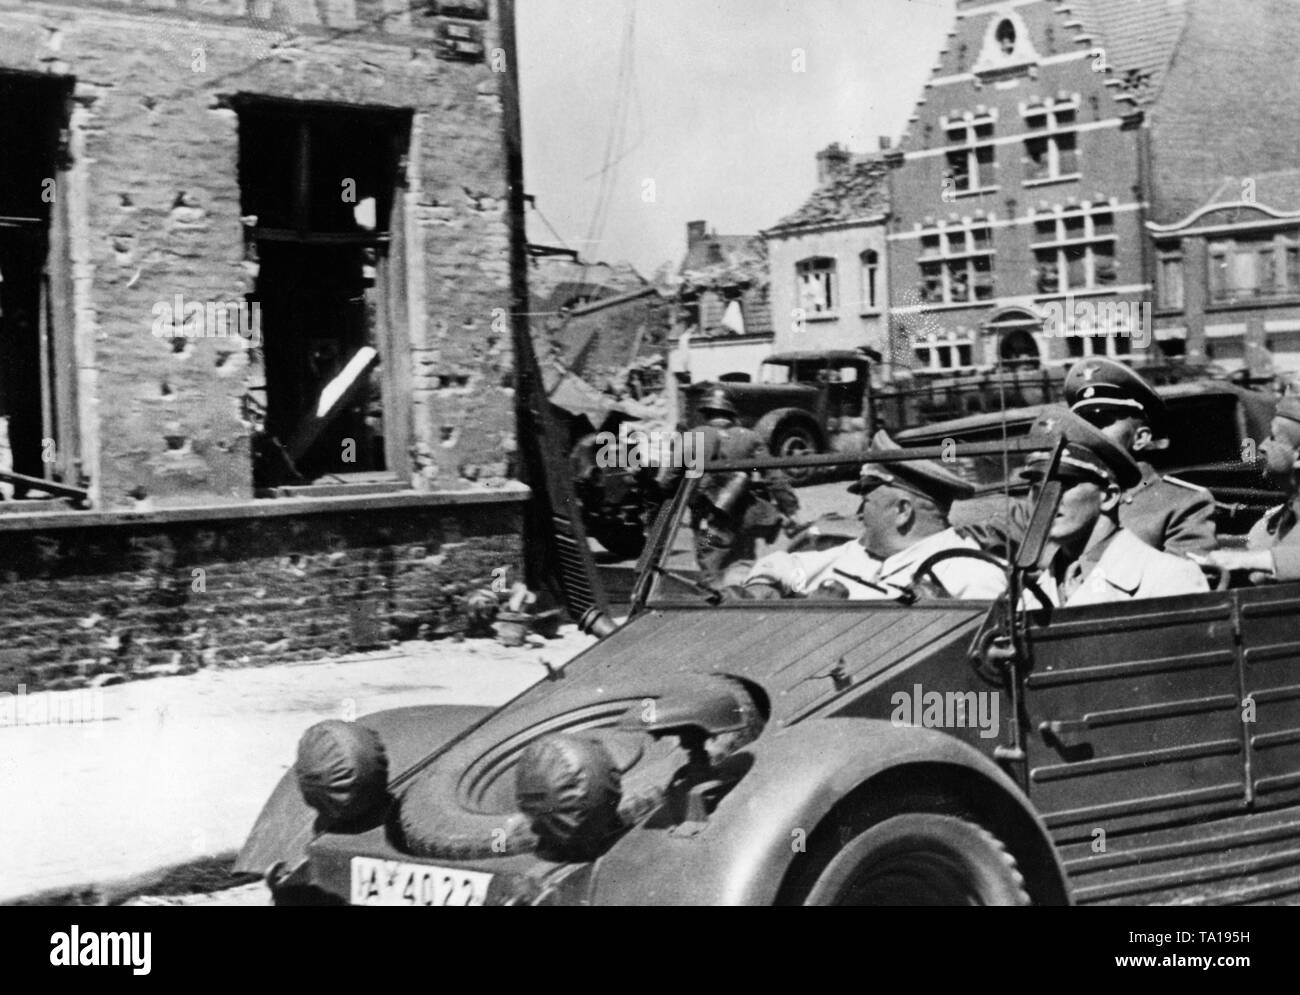 After the end of the fighting, Robert Ley drives in the truck through the streets of Dunkerque. Photo: Pfitzner - Stock Image